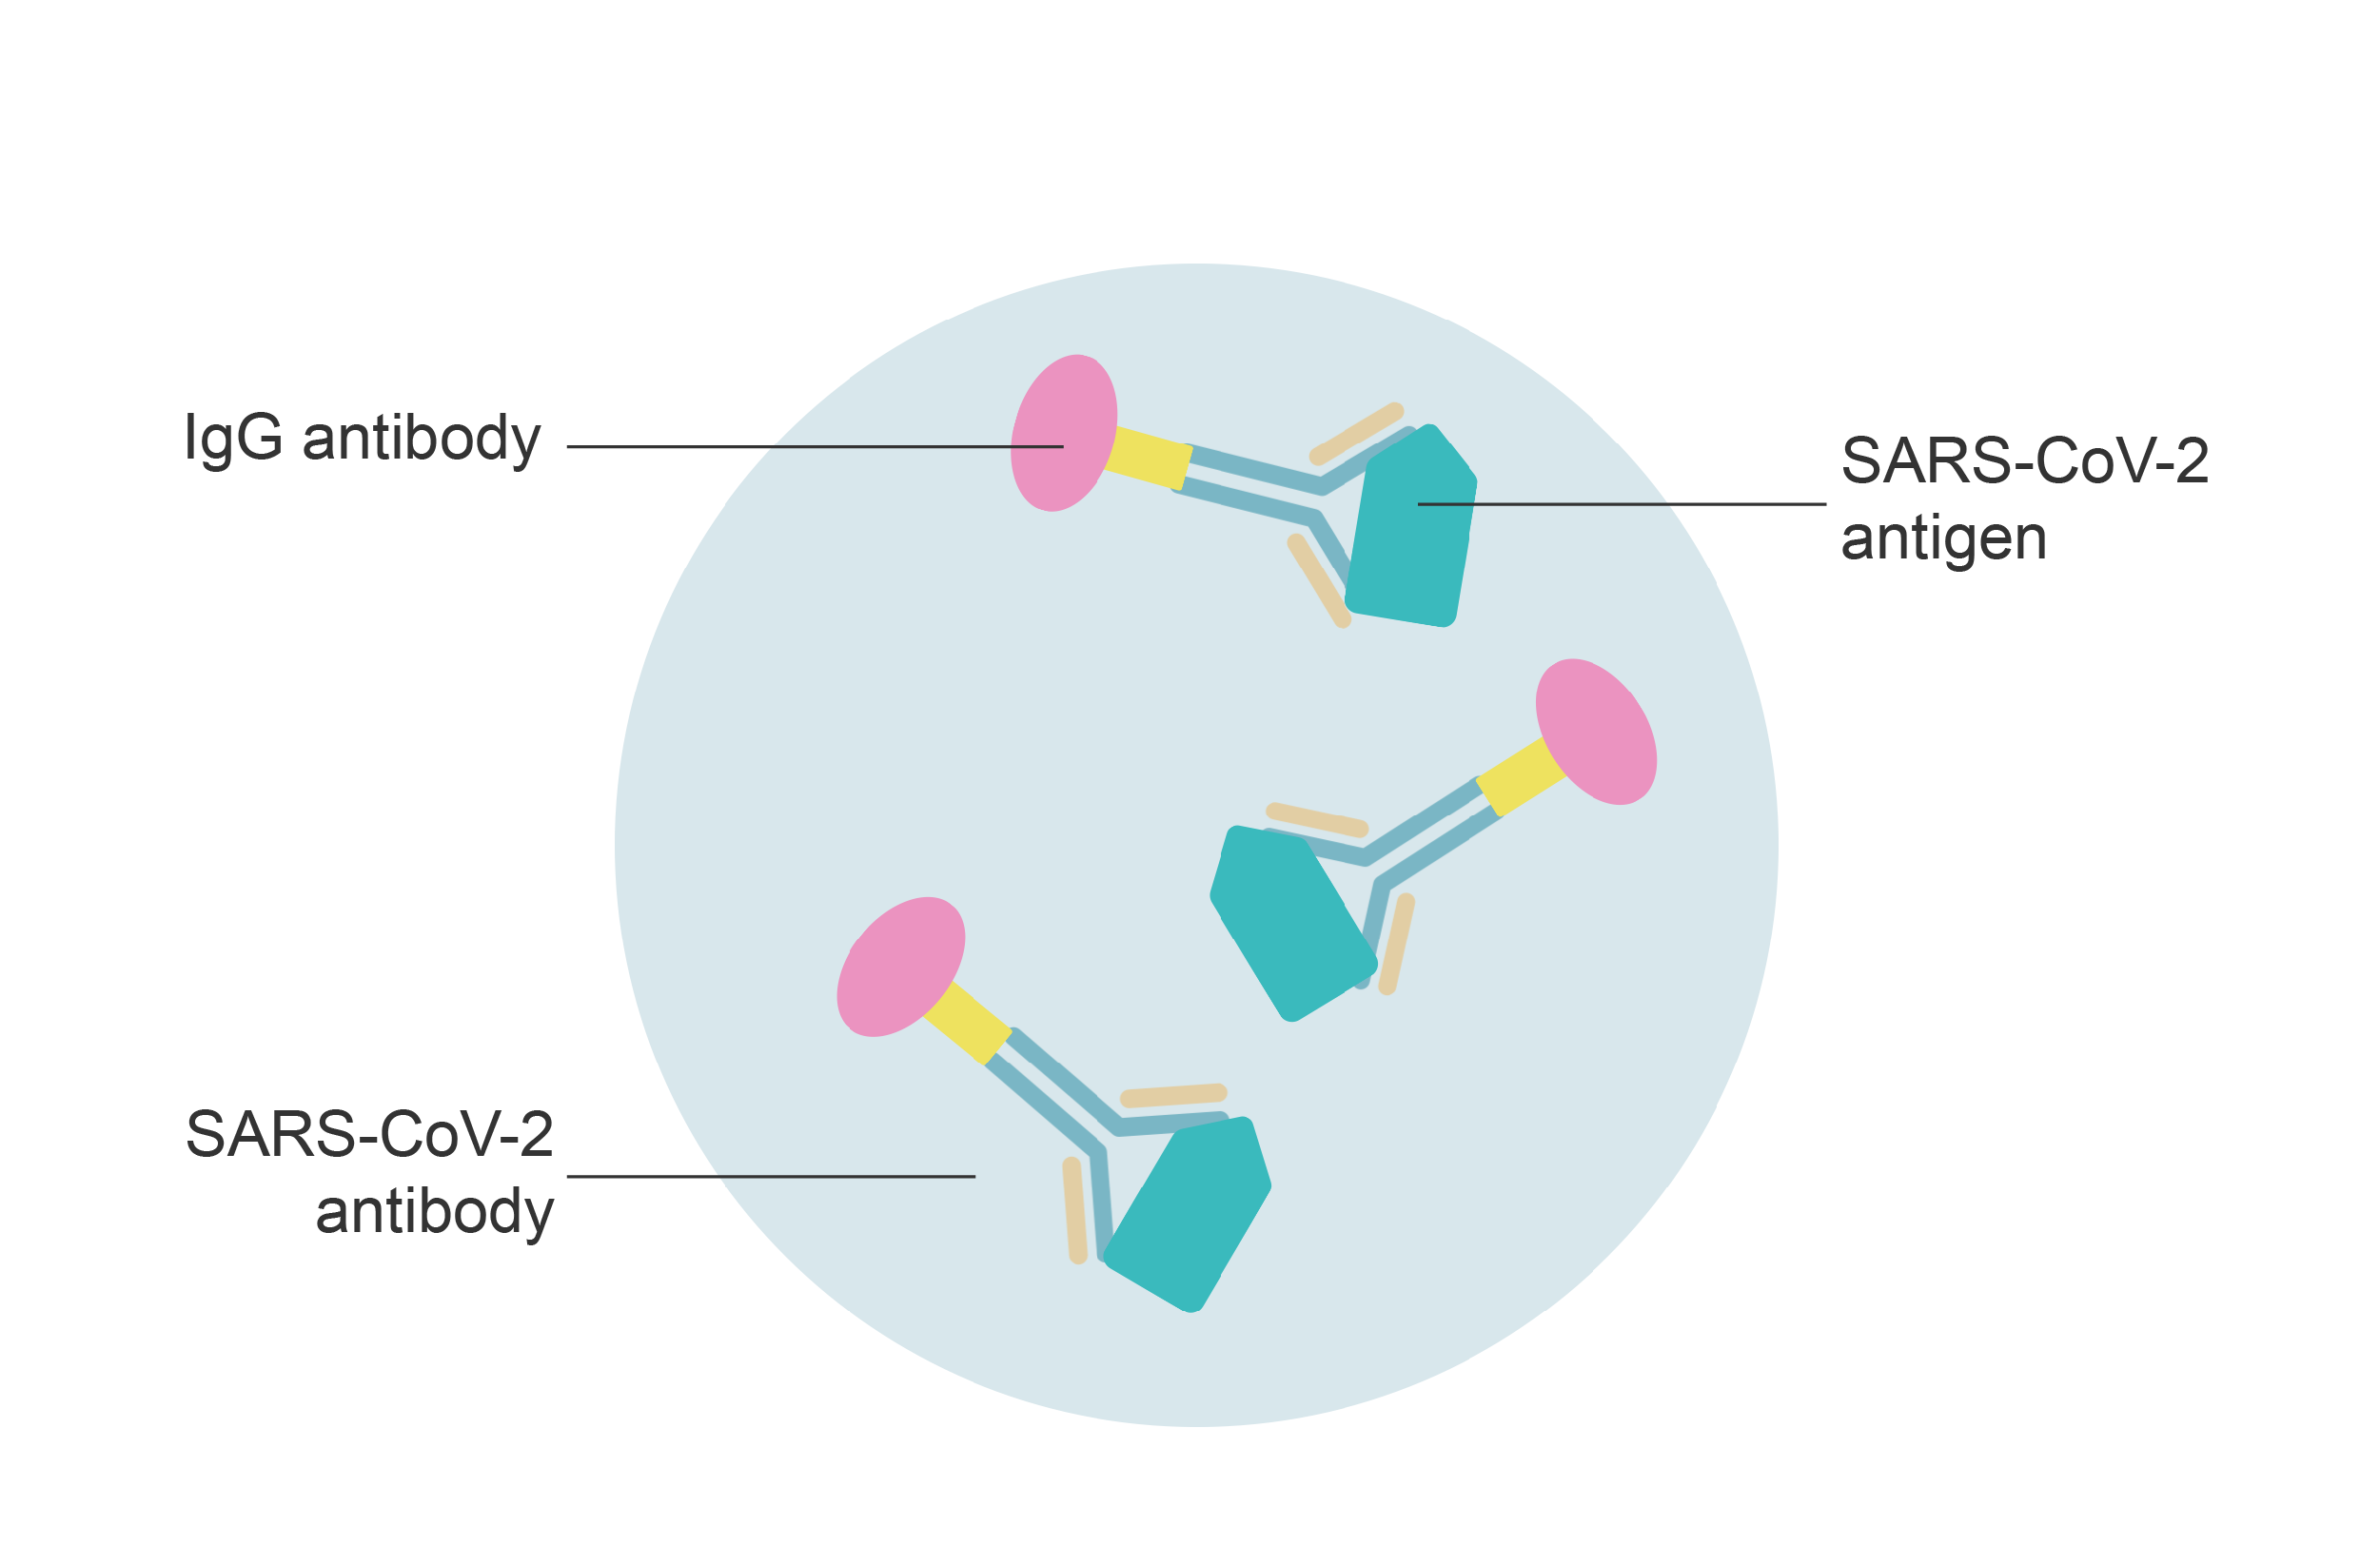 Microplate with SARS-CoV-2 antigens and antibodies, and IgG antibodies. Illustration